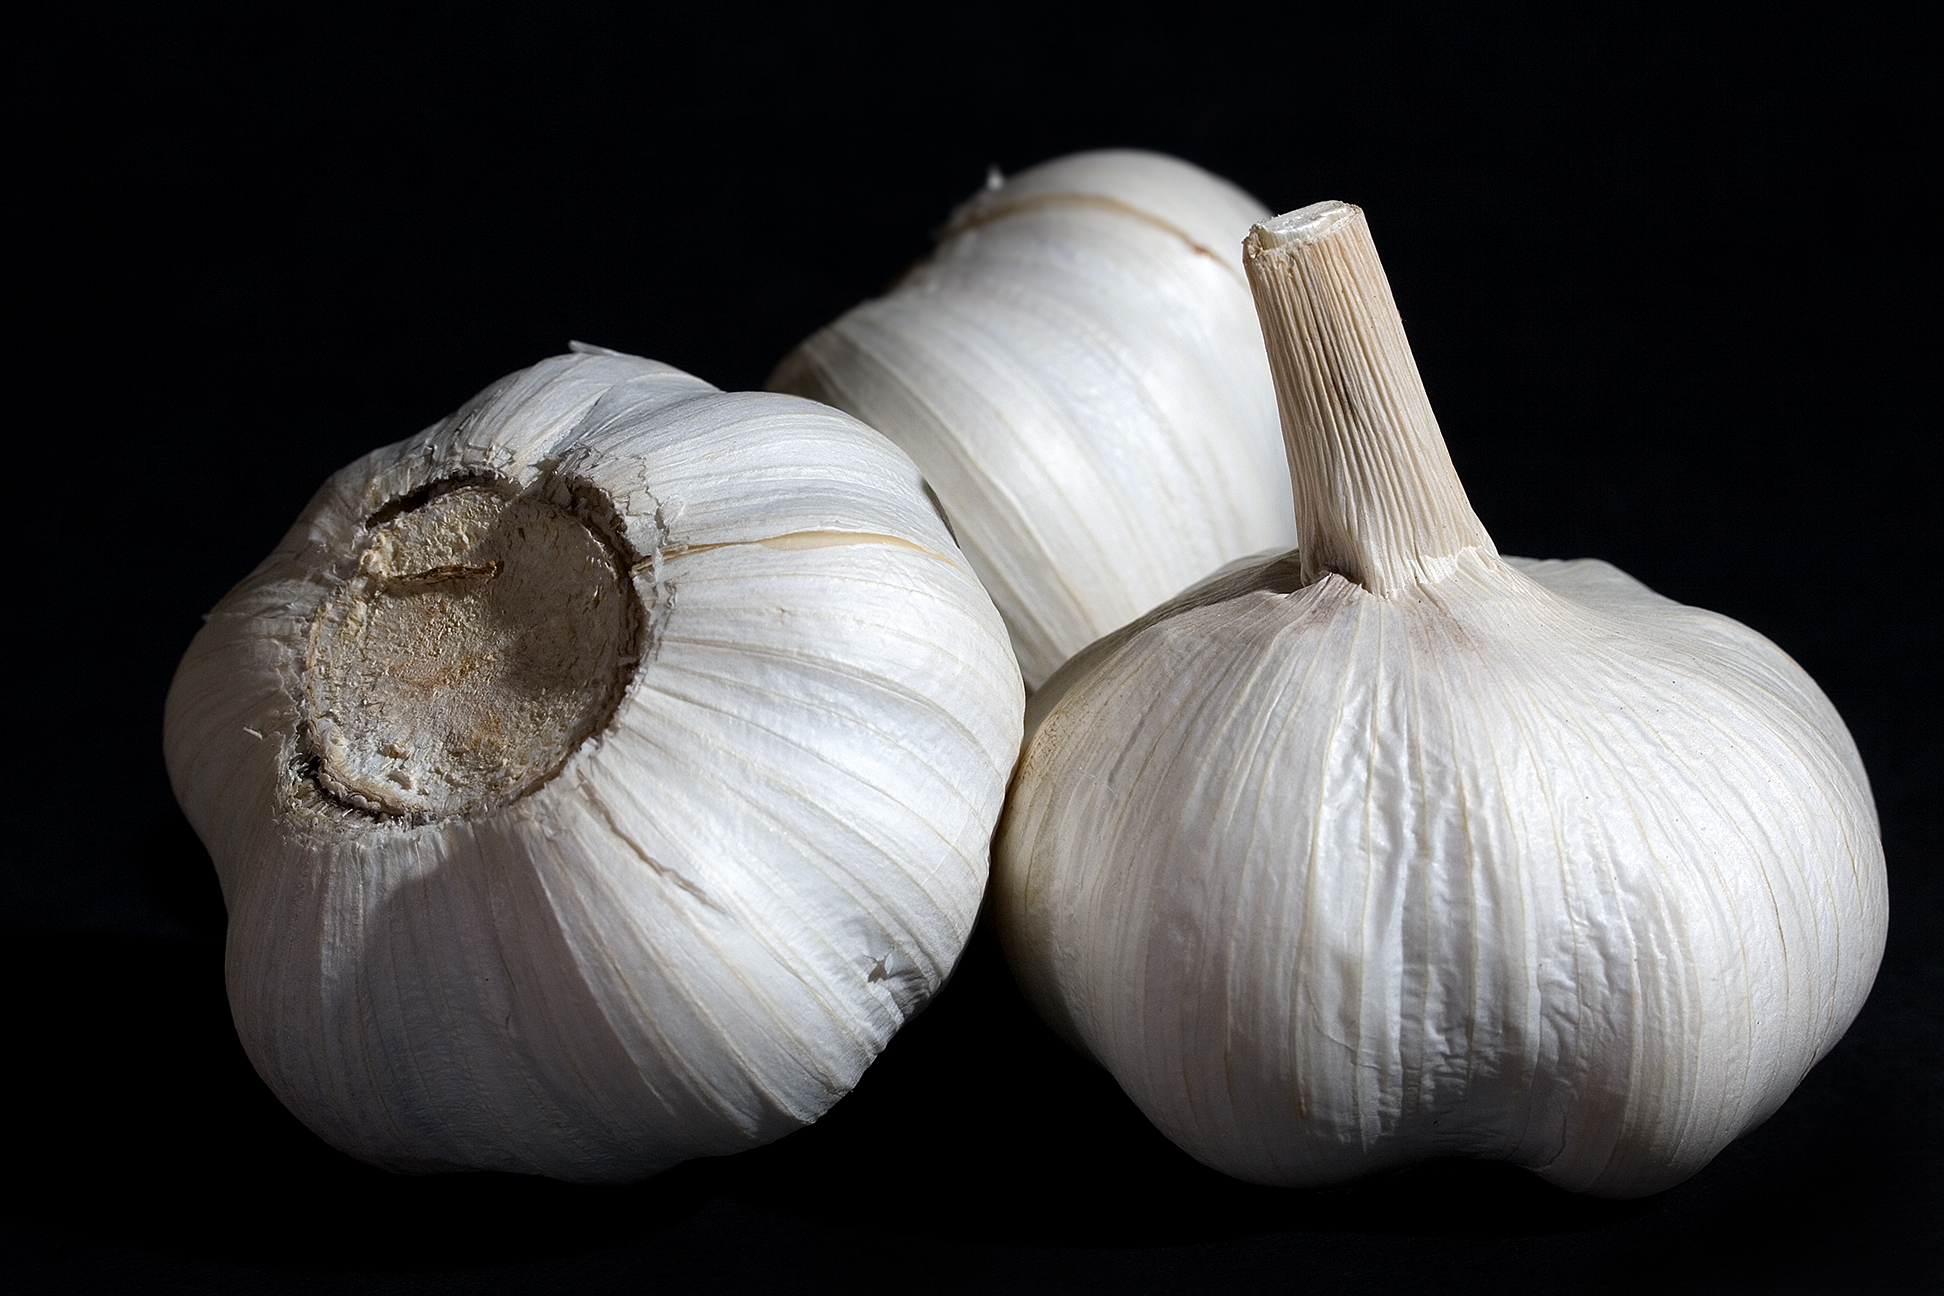 http://upload.wikimedia.org/wikipedia/commons/b/bb/Garlic_Bulbs.jpg